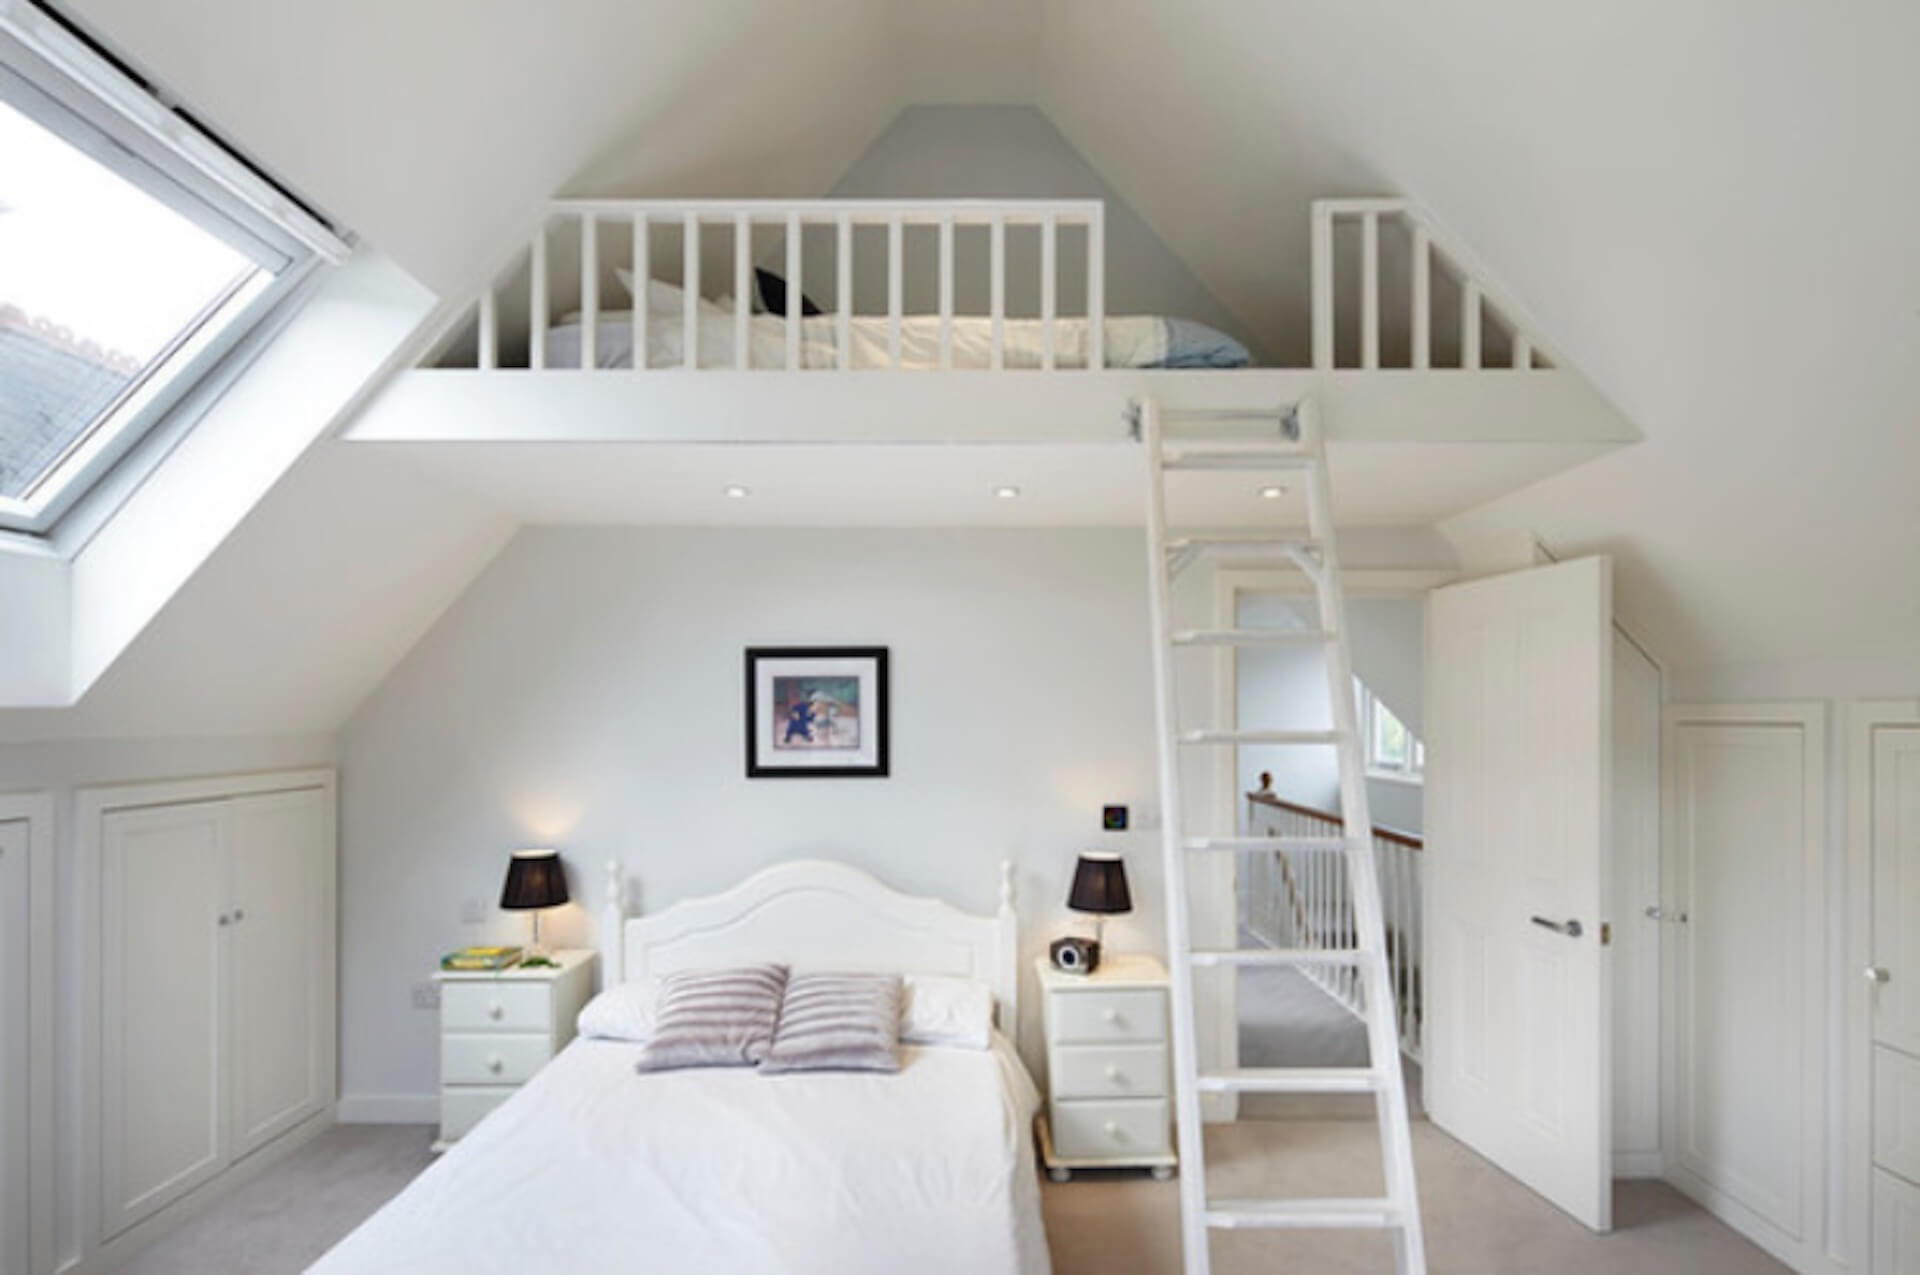 loft conversion cardiff-attic-modification-penarth-barry-lisvane-fairwater-ely-roath-canton-cyncoed-mumbles-swansea